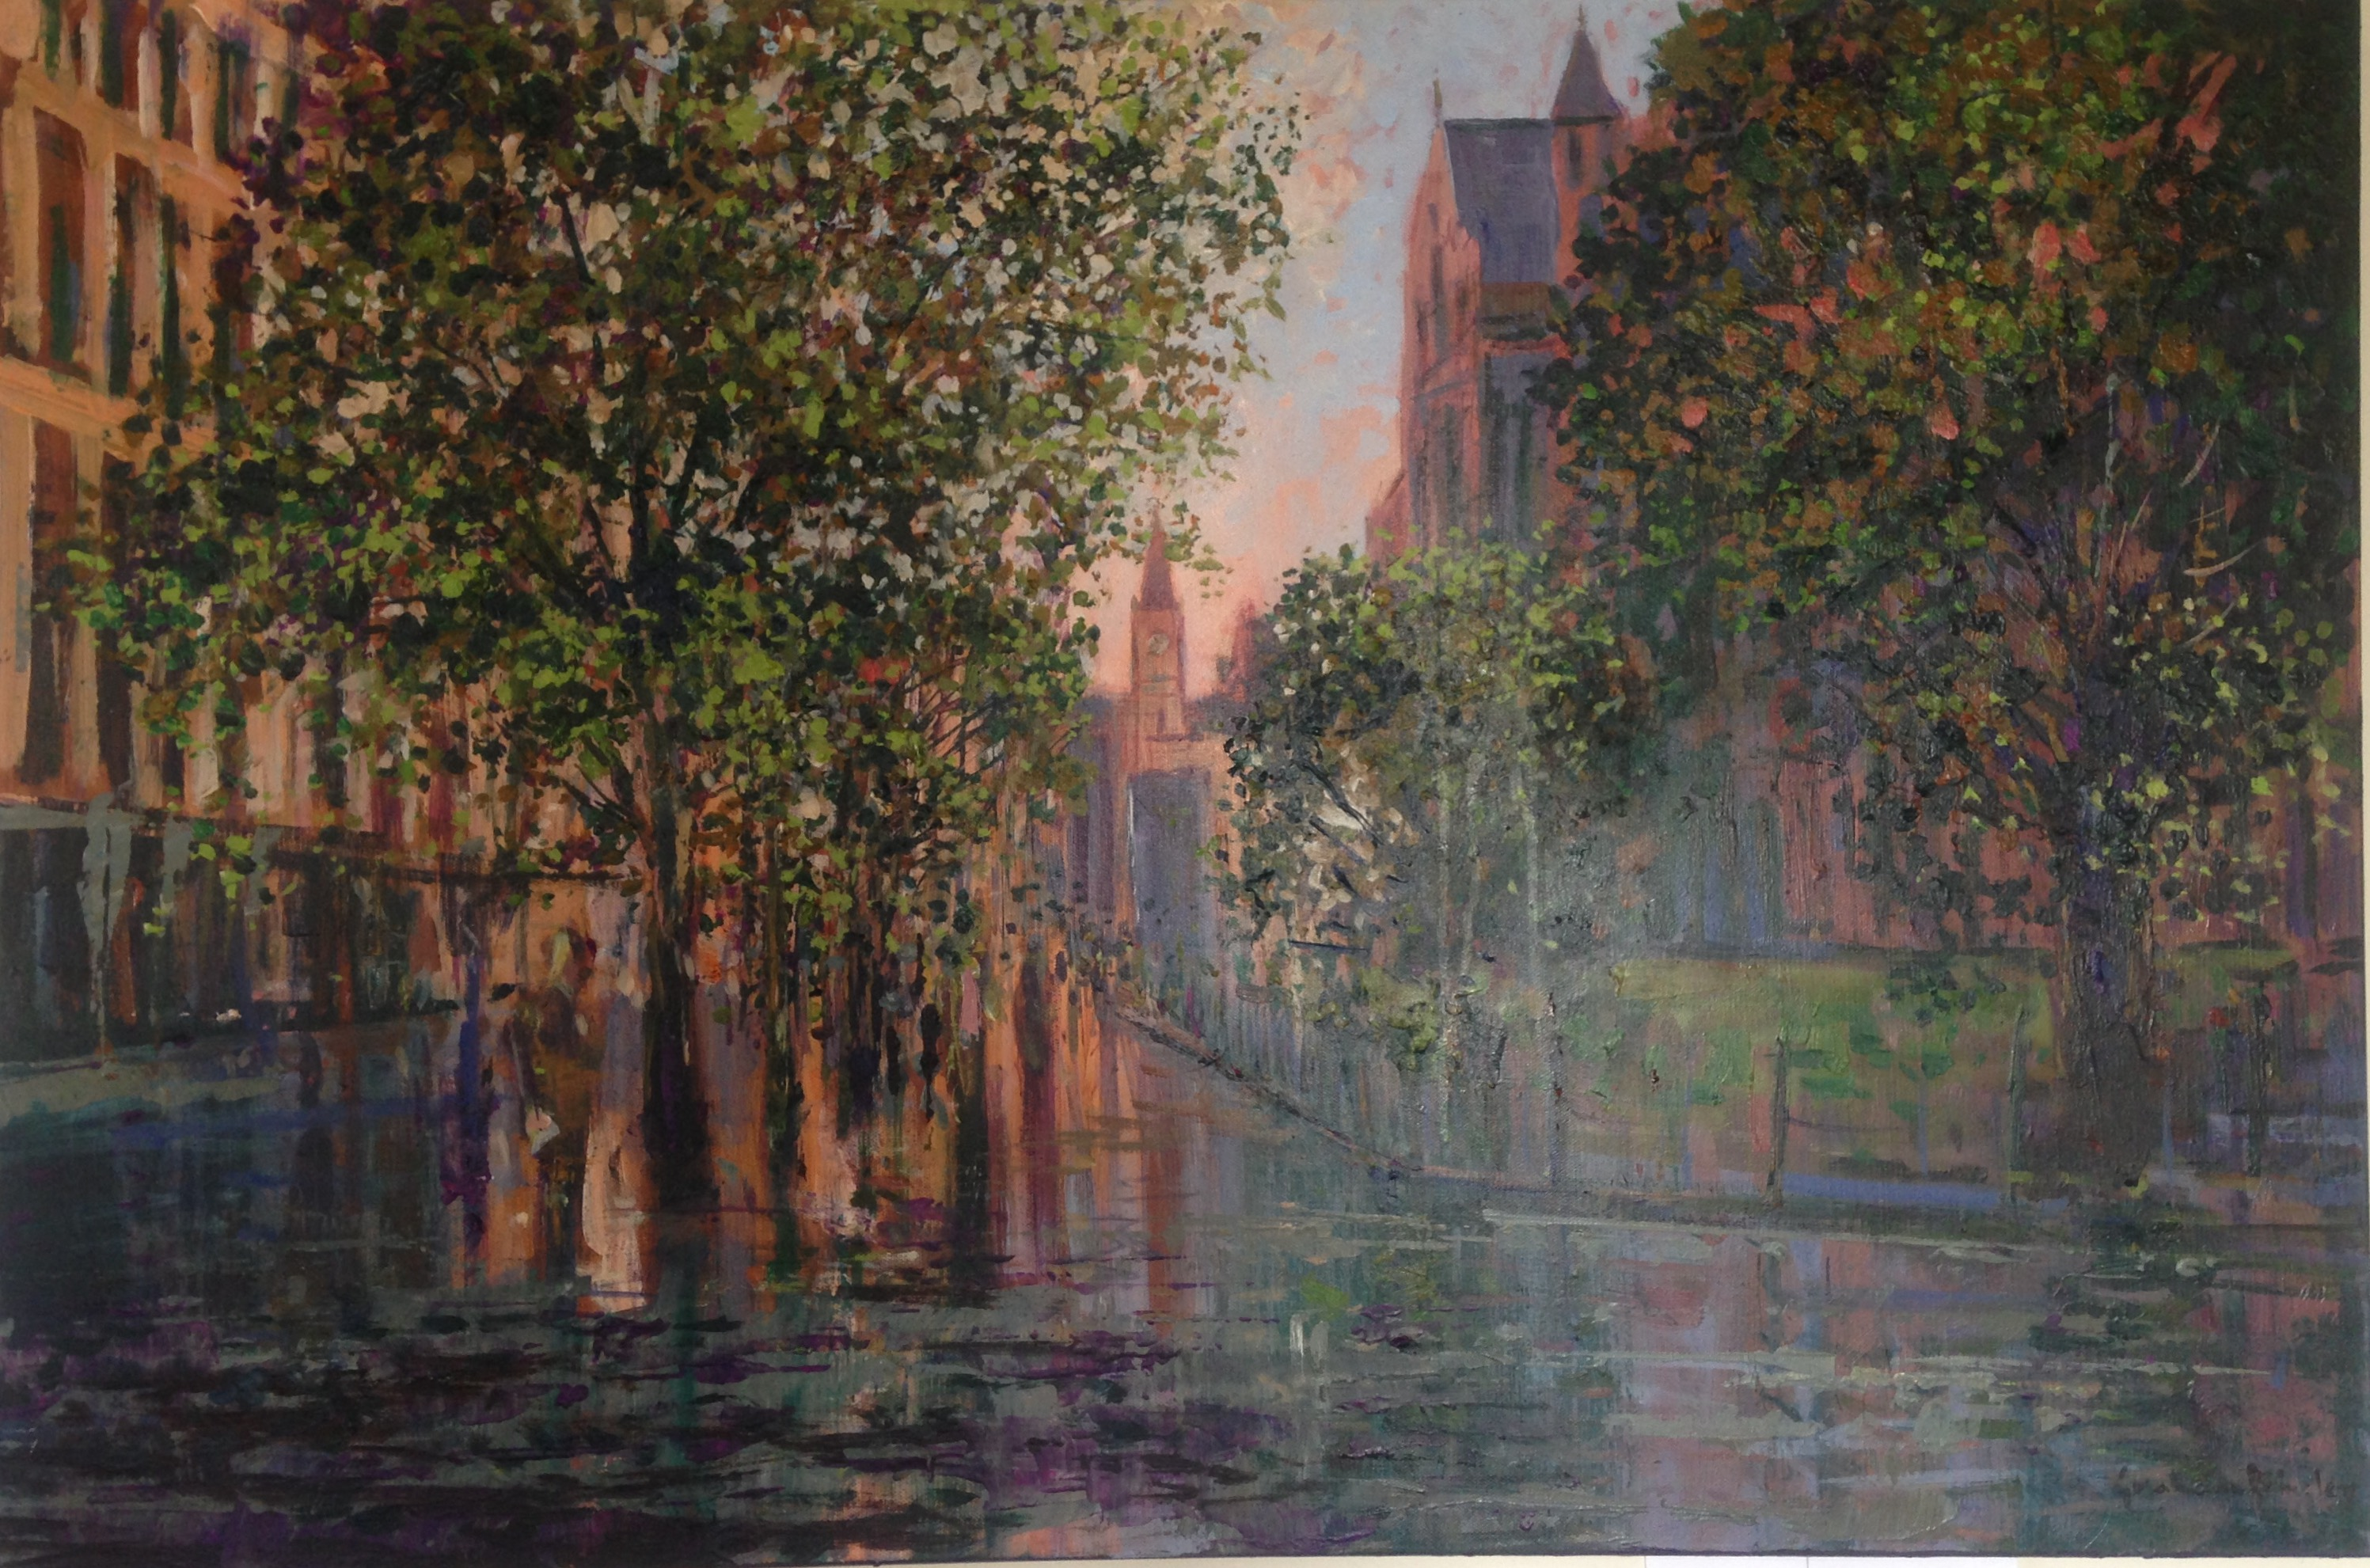 Melbourne in the Rain artwork by Graham Brinsley - art listed for sale on Artplode